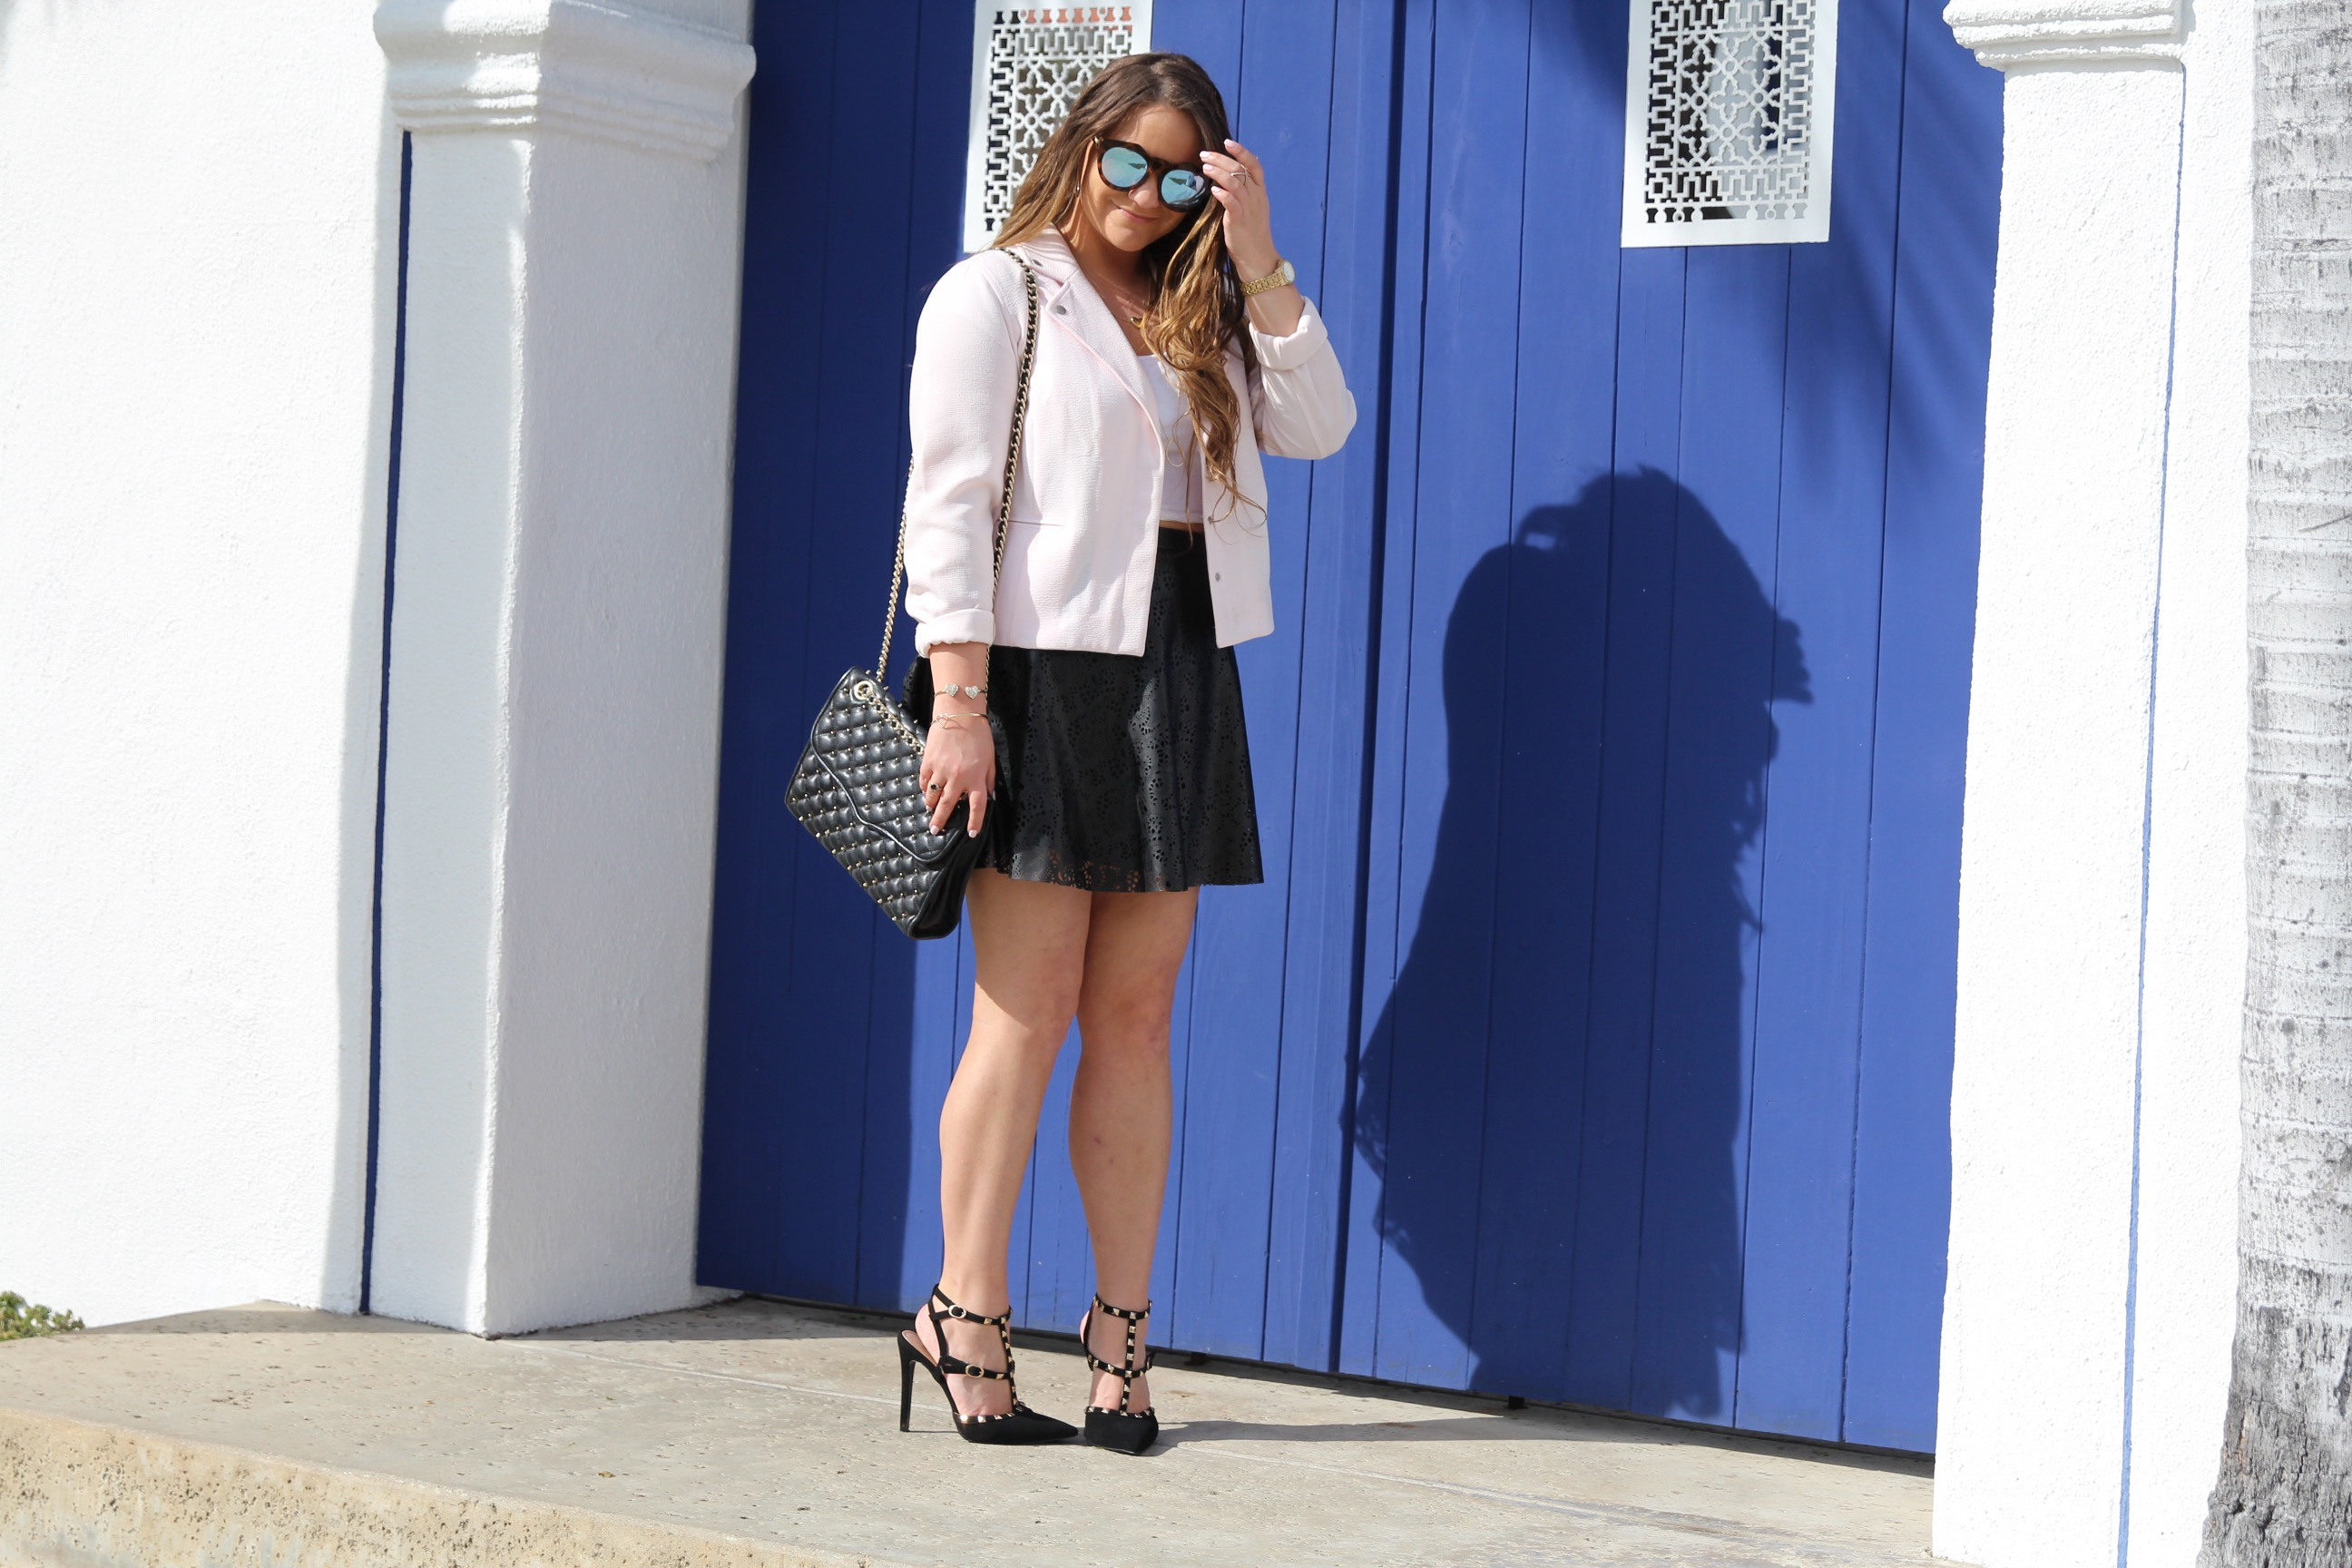 missyonmadison, fashion blog, fashion blogger, perforated skirt, black leather skirt, white crop top, white short sleeve crop top, light pink moto jacket, black studded heels, rockstud heels, look for less, le specs sunglasses, mirrored sunglasses, brunette hair, summer style, how to style a moto jacket, how to wear a leather skirt, la blogger, la style, melissa tierney,